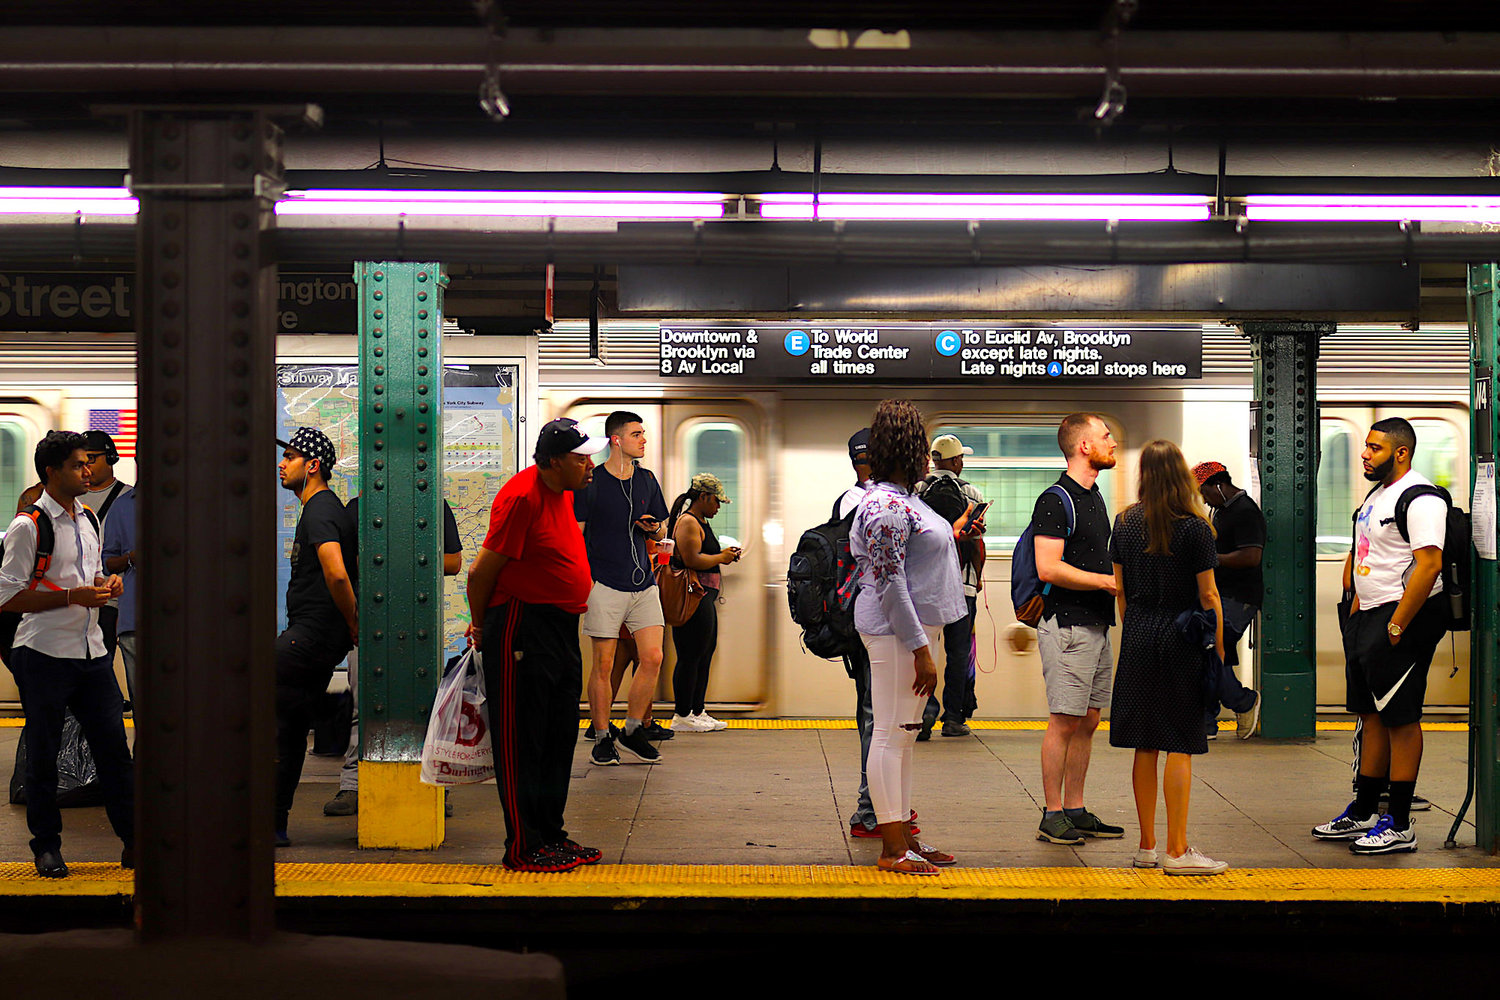 Expect Delays On The 4, 5, D, N, and Q Lines This Weekend